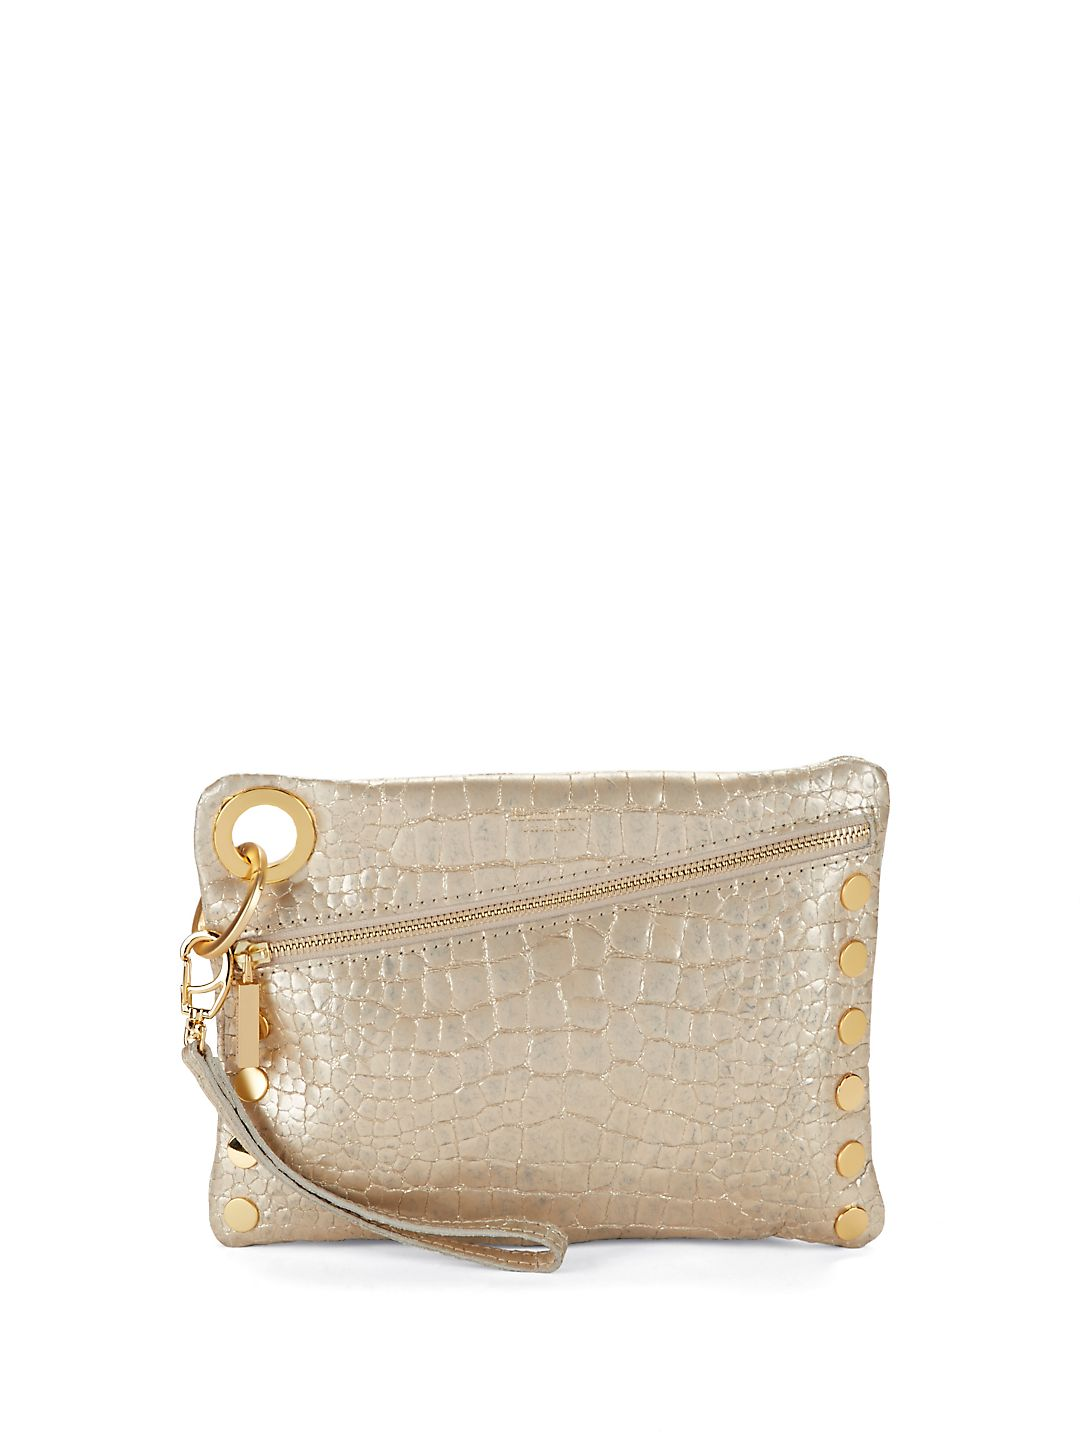 Nash Embossed Leather Clutch Crossbody